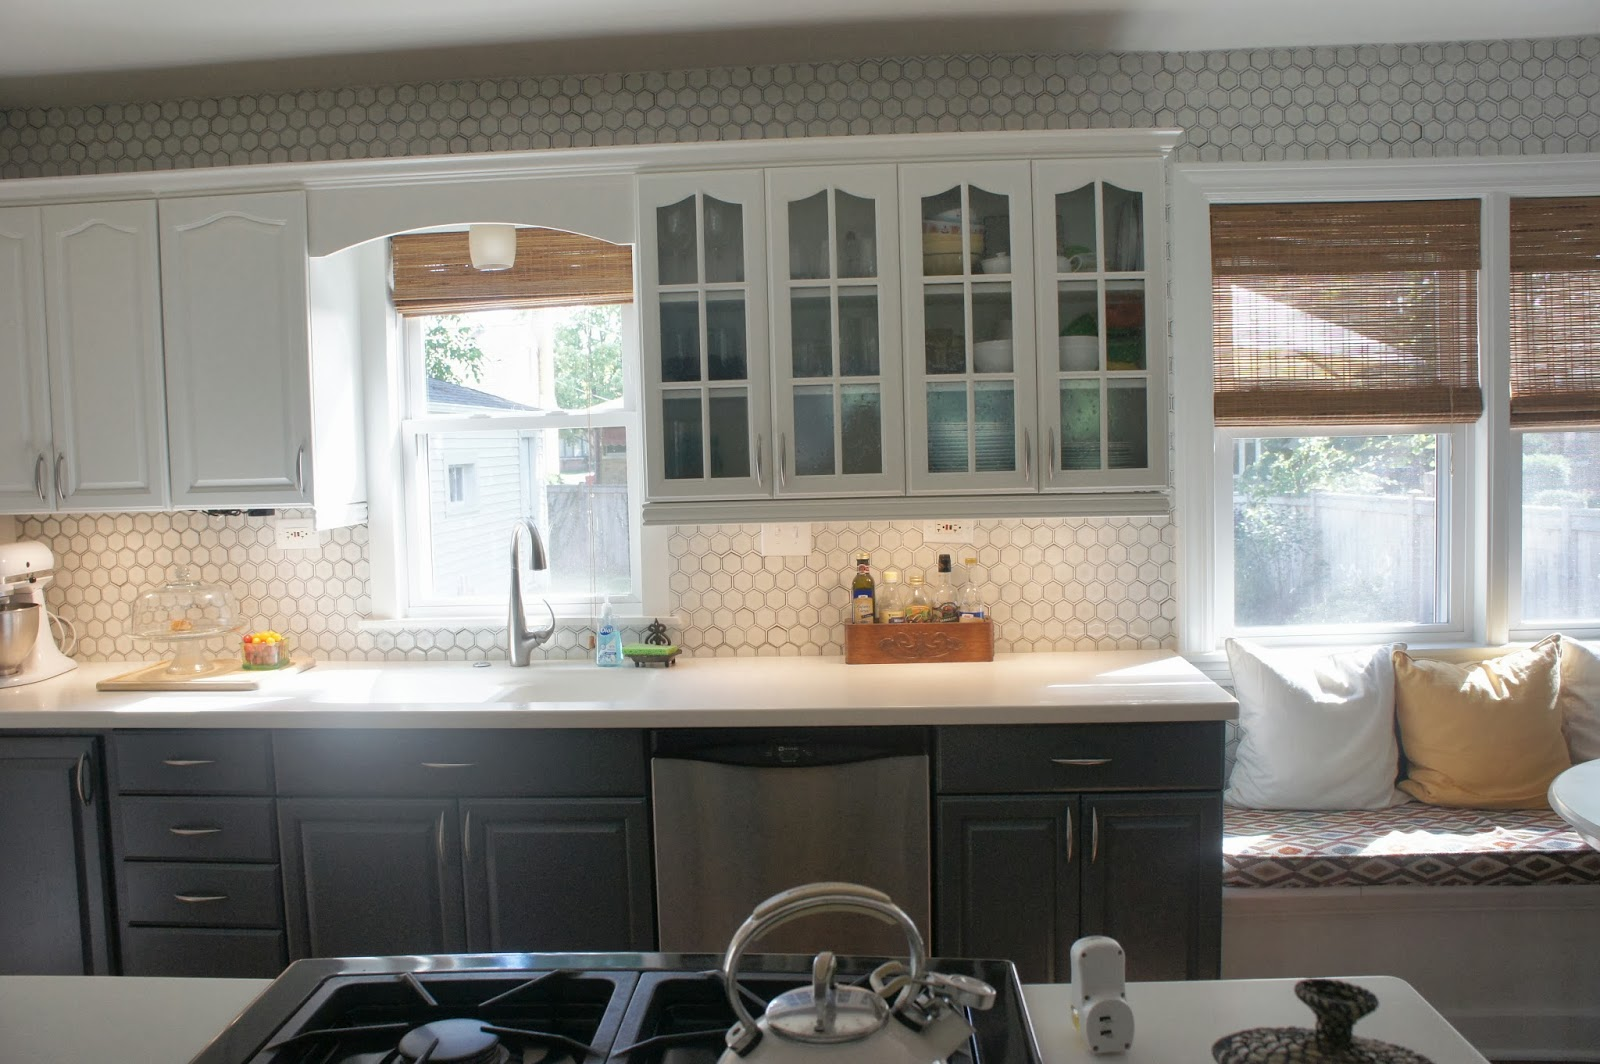 backsplash for kitchen cabinets 589 best backsplash ideas images remodelaholic gray and white kitchen makeover with hexagon tile